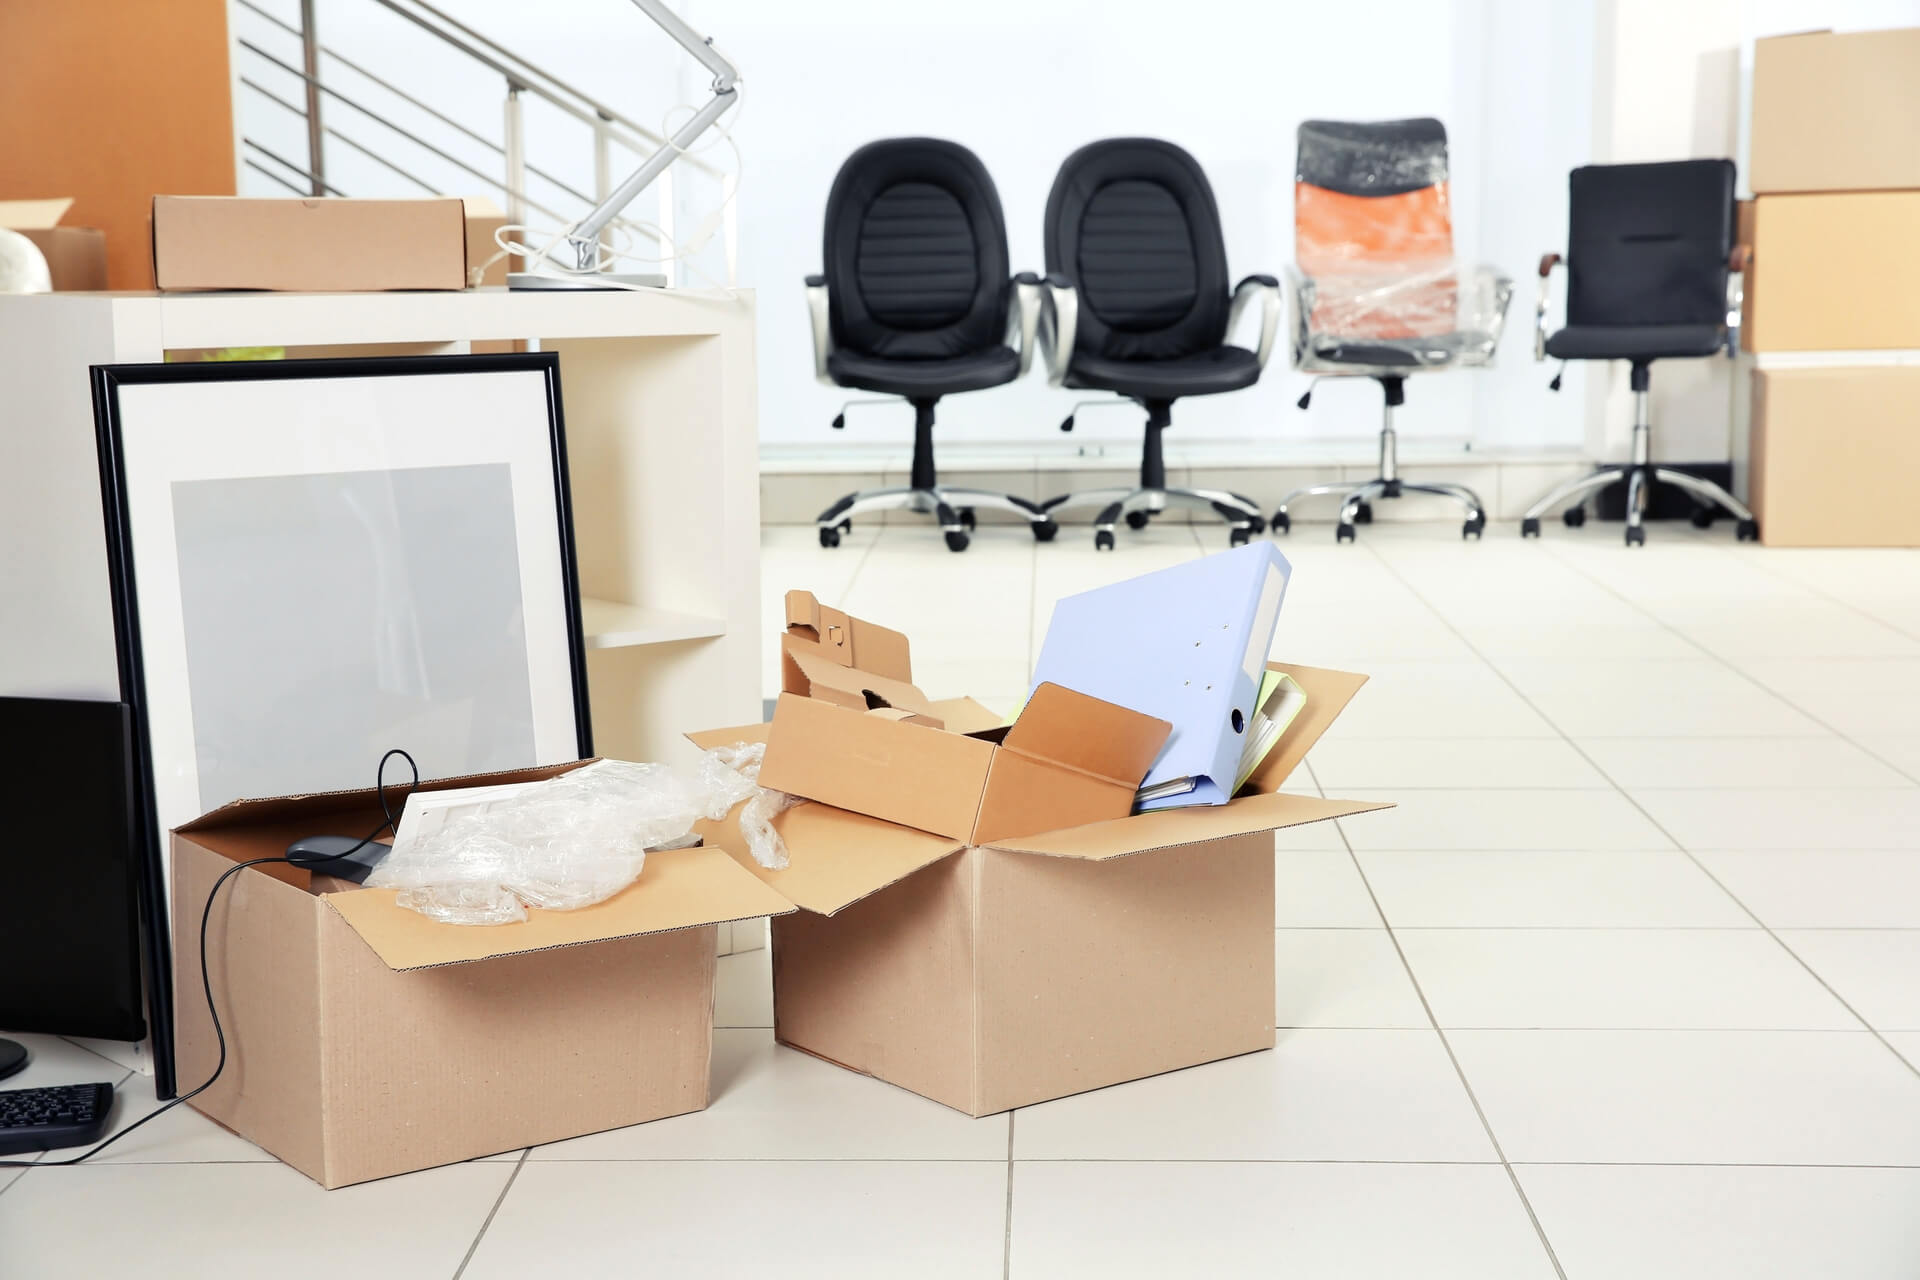 Commercial Movers In Dallas Packed Up Office